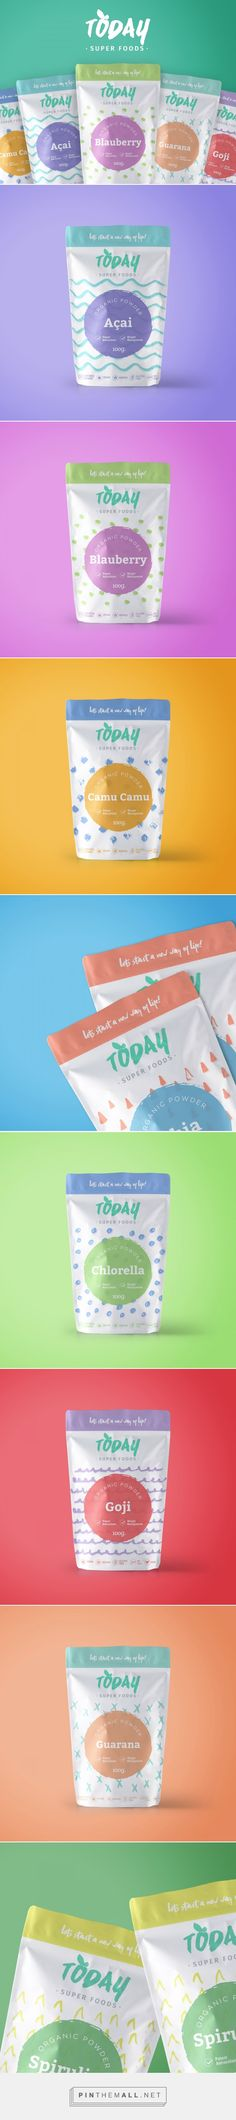 Today, Super Foods - Packaging of the World - Creative Package Design Gallery… Apple Packaging, Chip Packaging, Pouch Packaging, Food Packaging Design, Coffee Packaging, Packaging Design Inspiration, Brand Packaging, Label Design, Package Design